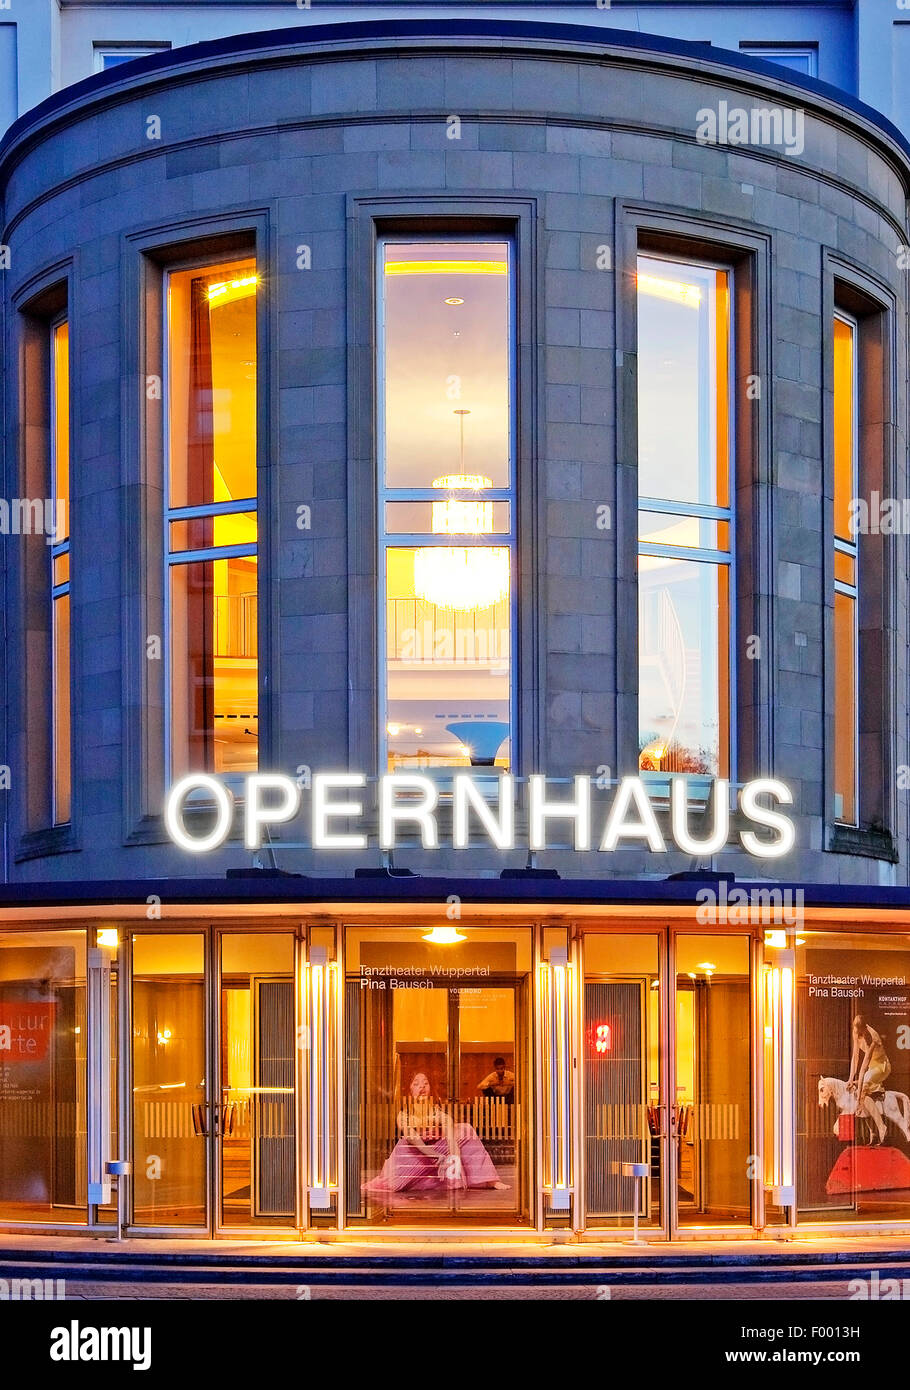 Wuppertal Opera House in Barmen at blue hour, Germany, North Rhine-Westphalia, Bergisches Land, Wuppertal - Stock Image